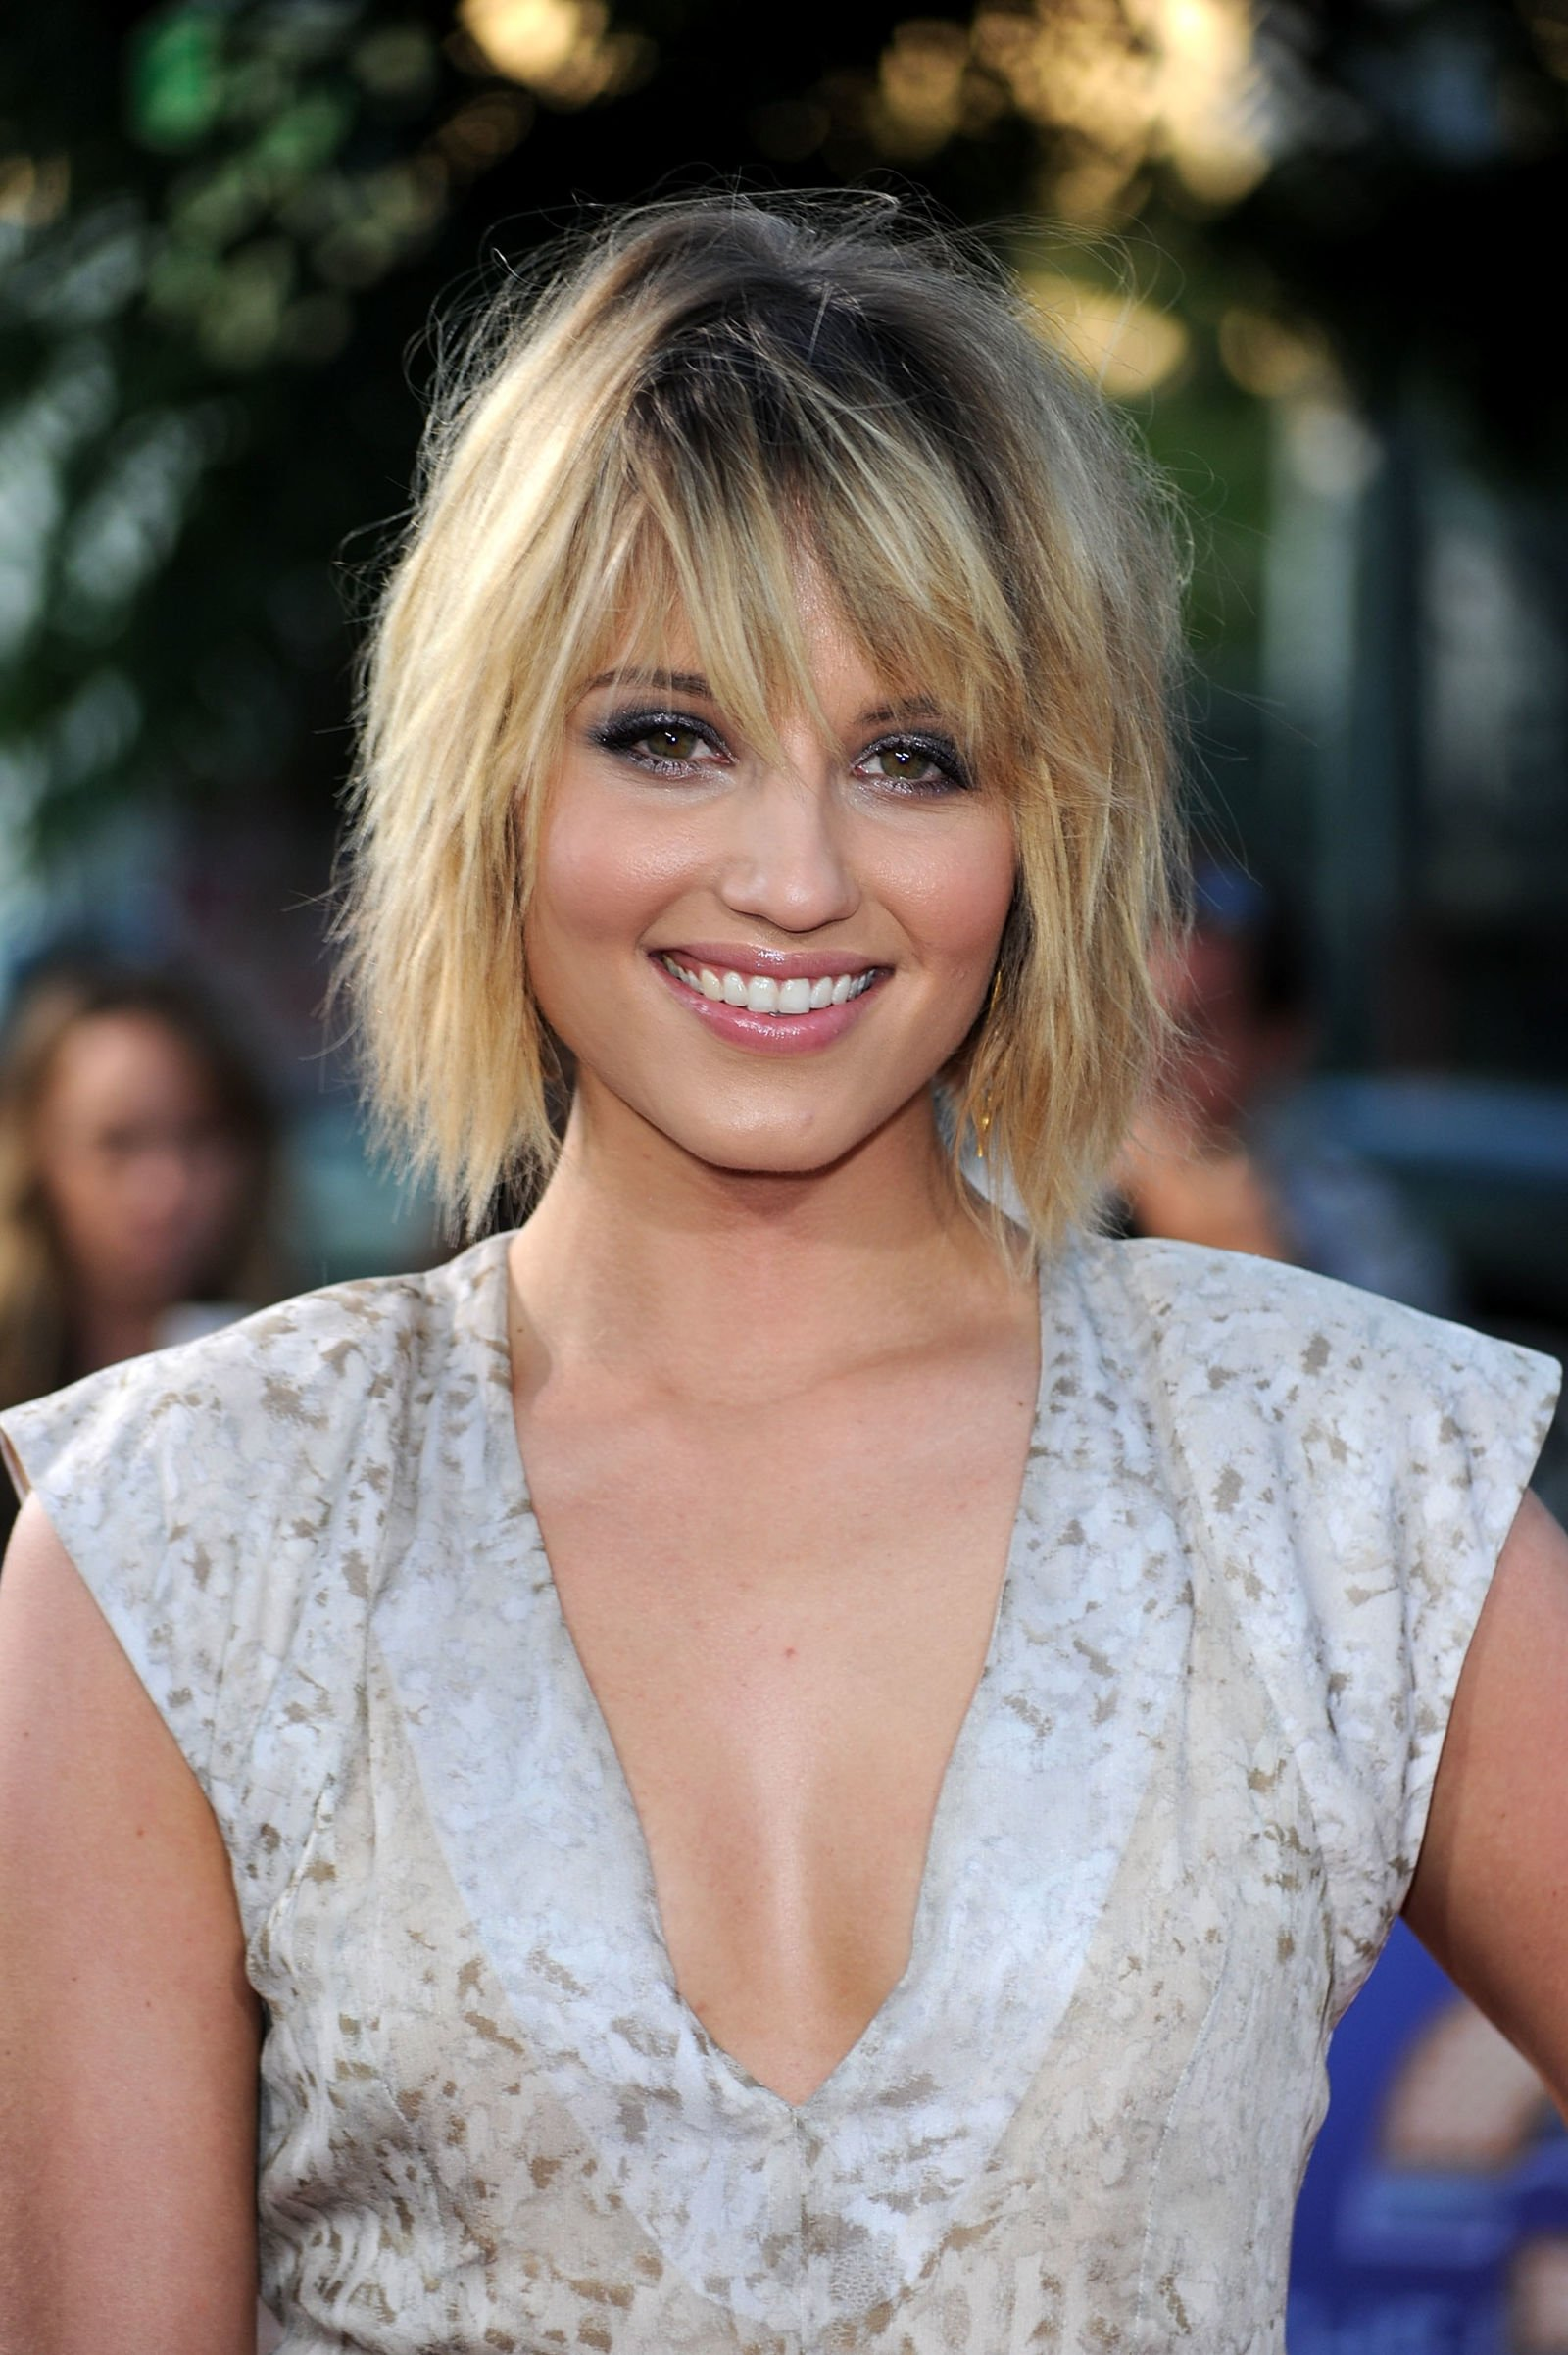 Blonde Bob hairstyles for women 2017 Medium hair